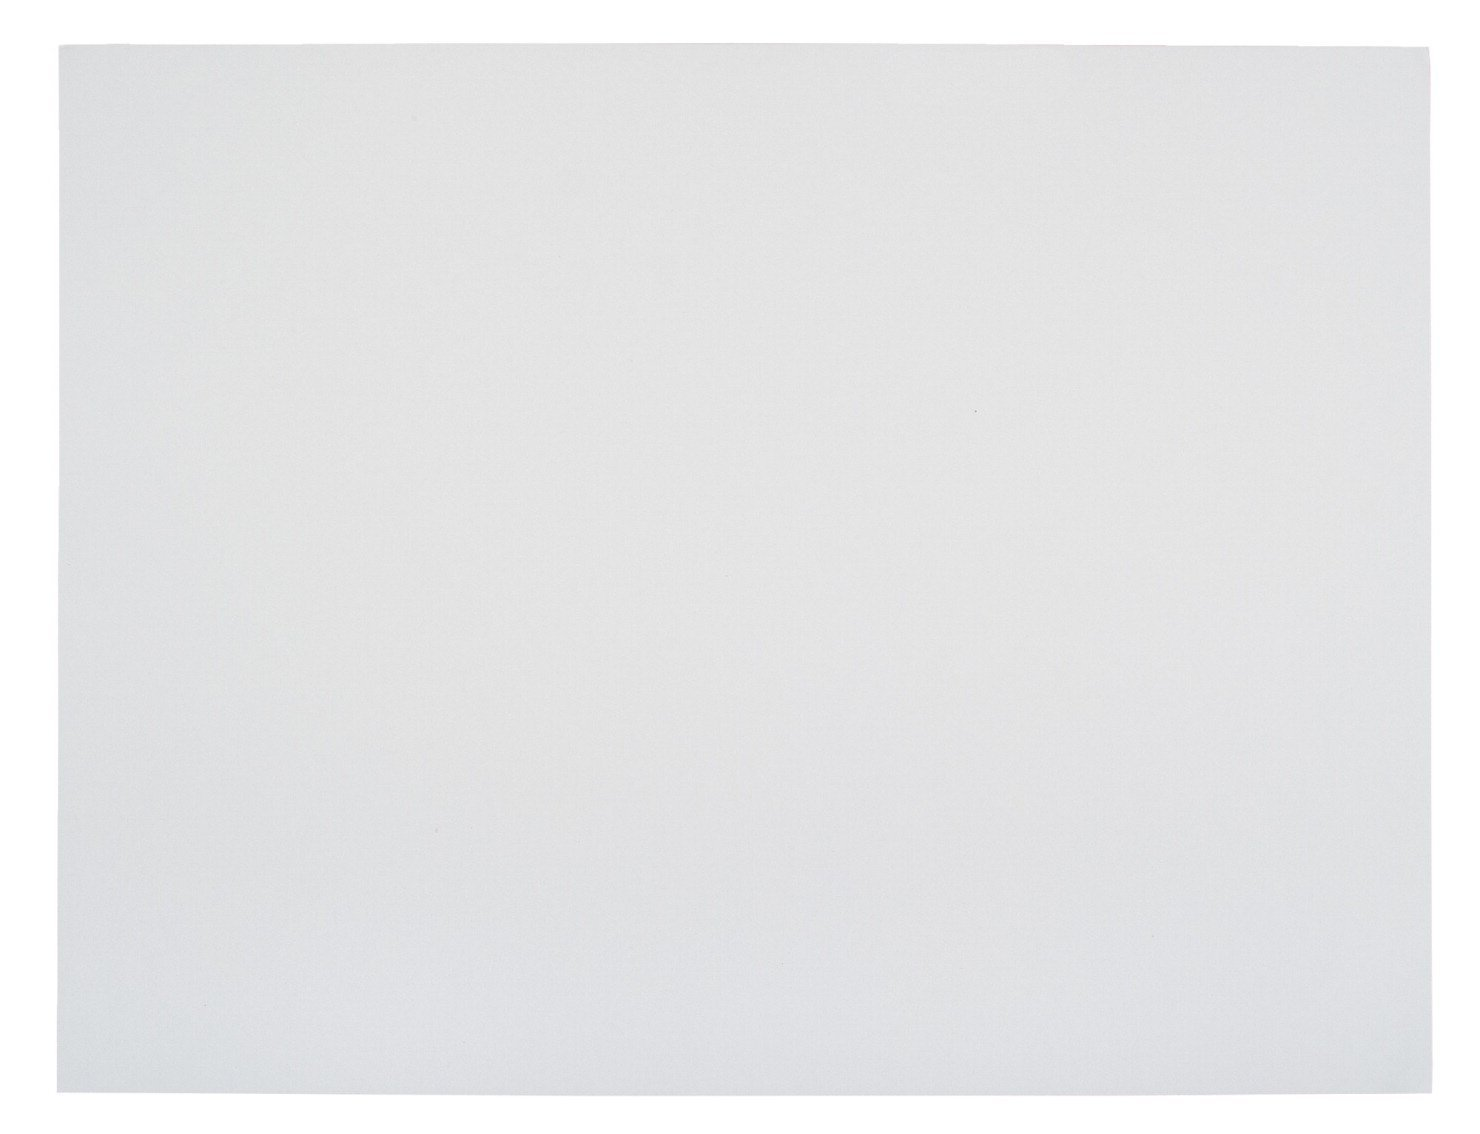 School Smart. 1485742 Railroad Board, 6-ply Thickness, 22'' x 28'', White (Pack of 25) (Limited Edition) by School Smart. (Image #1)